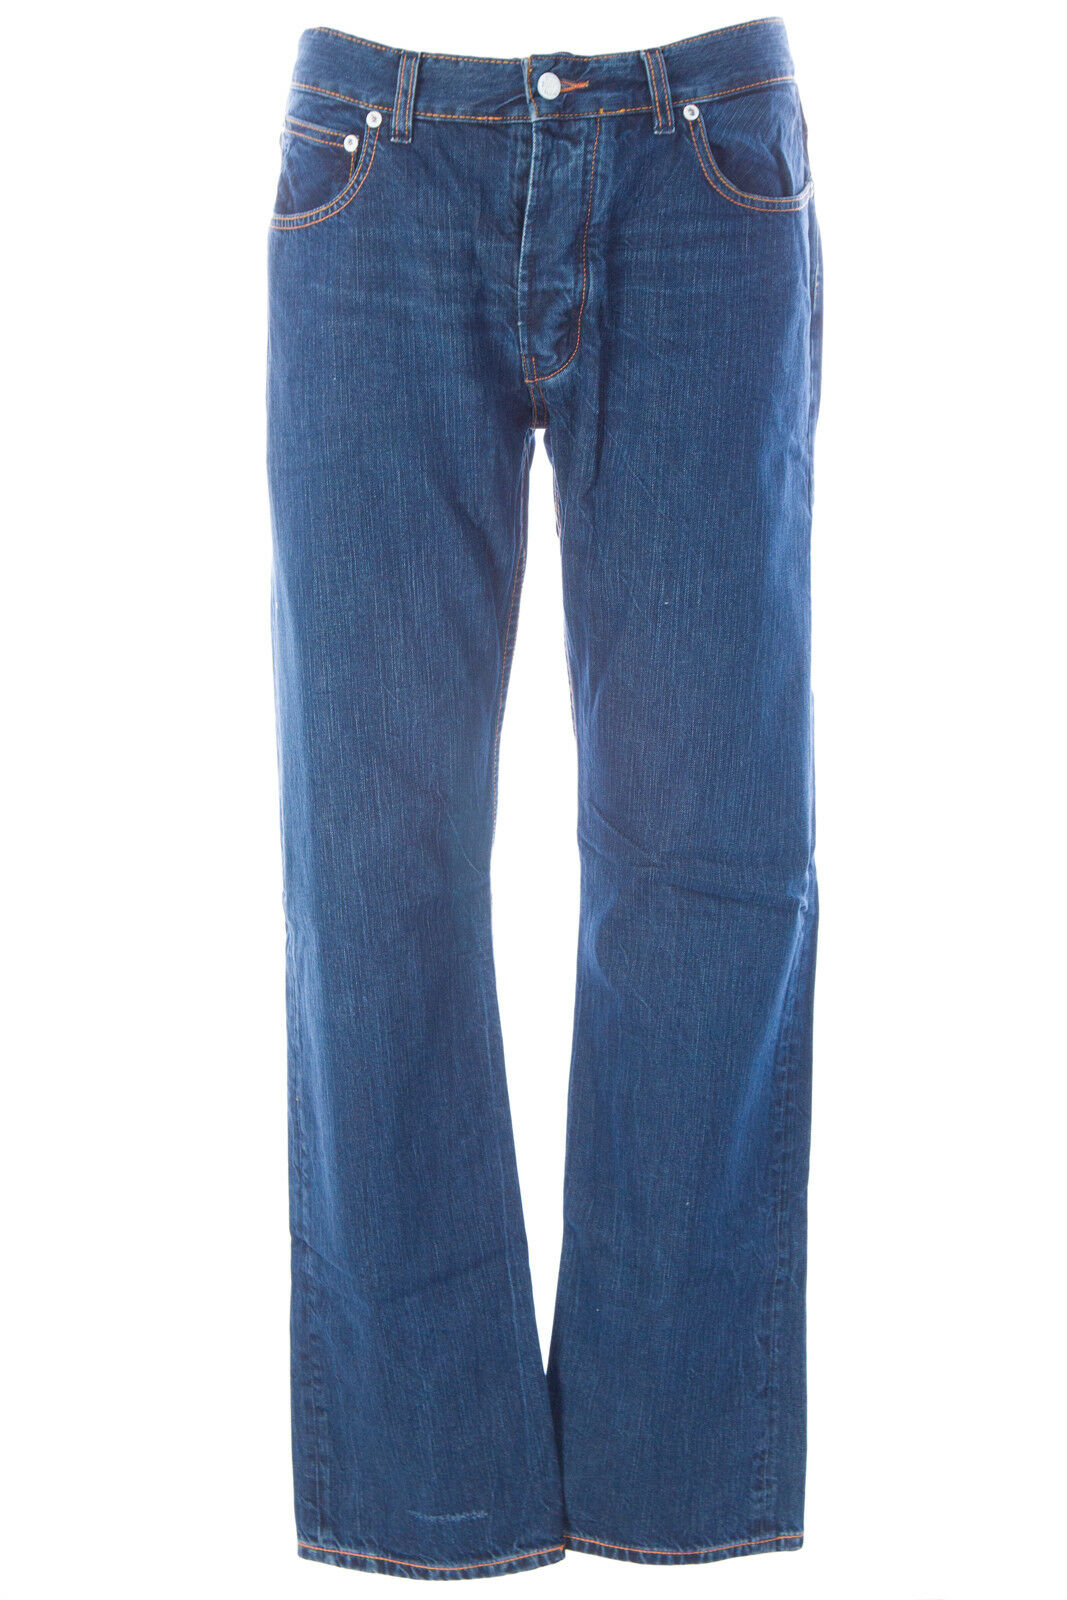 blueE BLOOD Men's Everday RBJ Denim Button Fly Jeans MW08D40 NWT